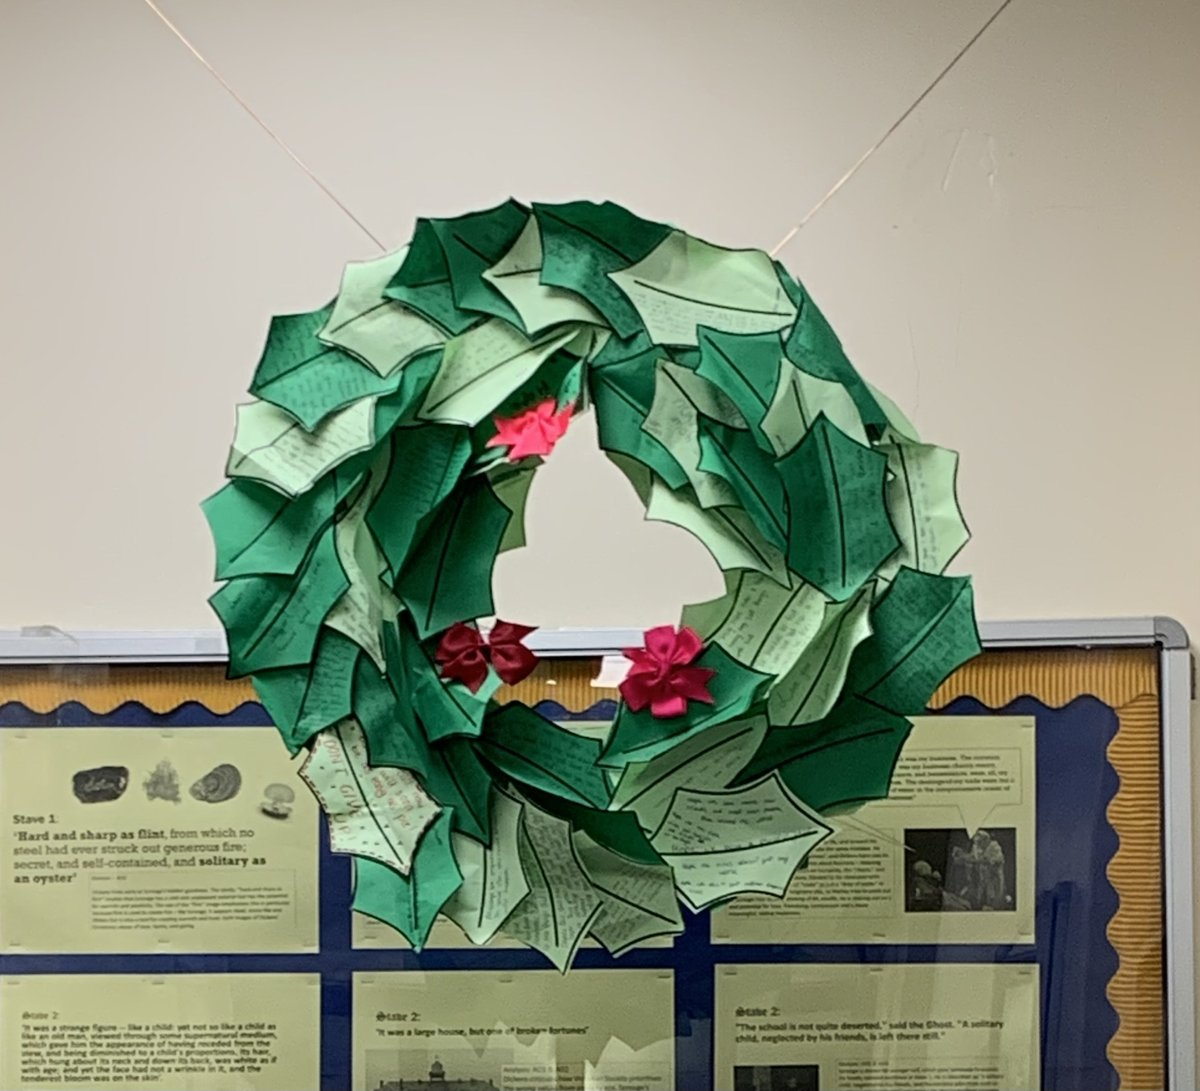 Advent is a very important time in the Liturgical Calendar and in our community; it is a time of preparation and celebration for the birth of Jesus Christ. We took this as an opportunity to create wreaths with messages of hope and joy to emphasise the real meaning of Advent